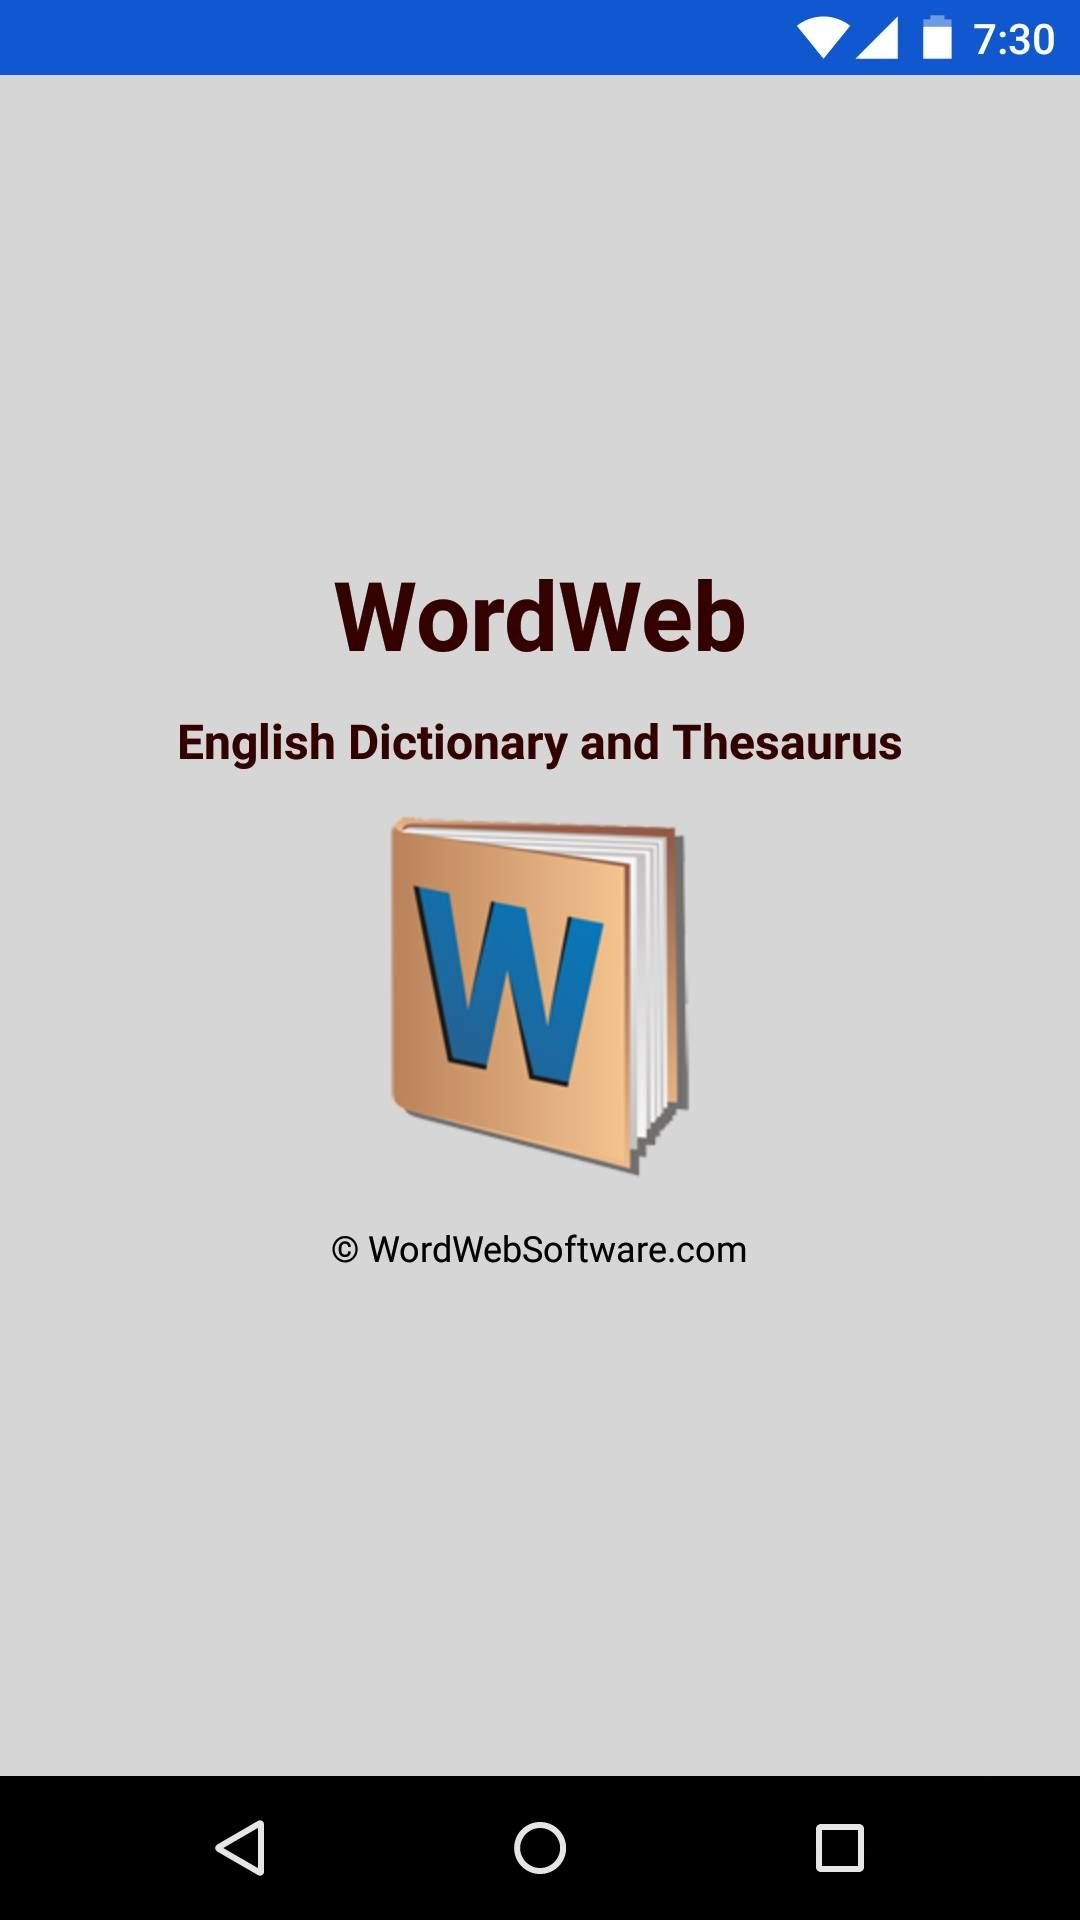 wordweb free dictionary download